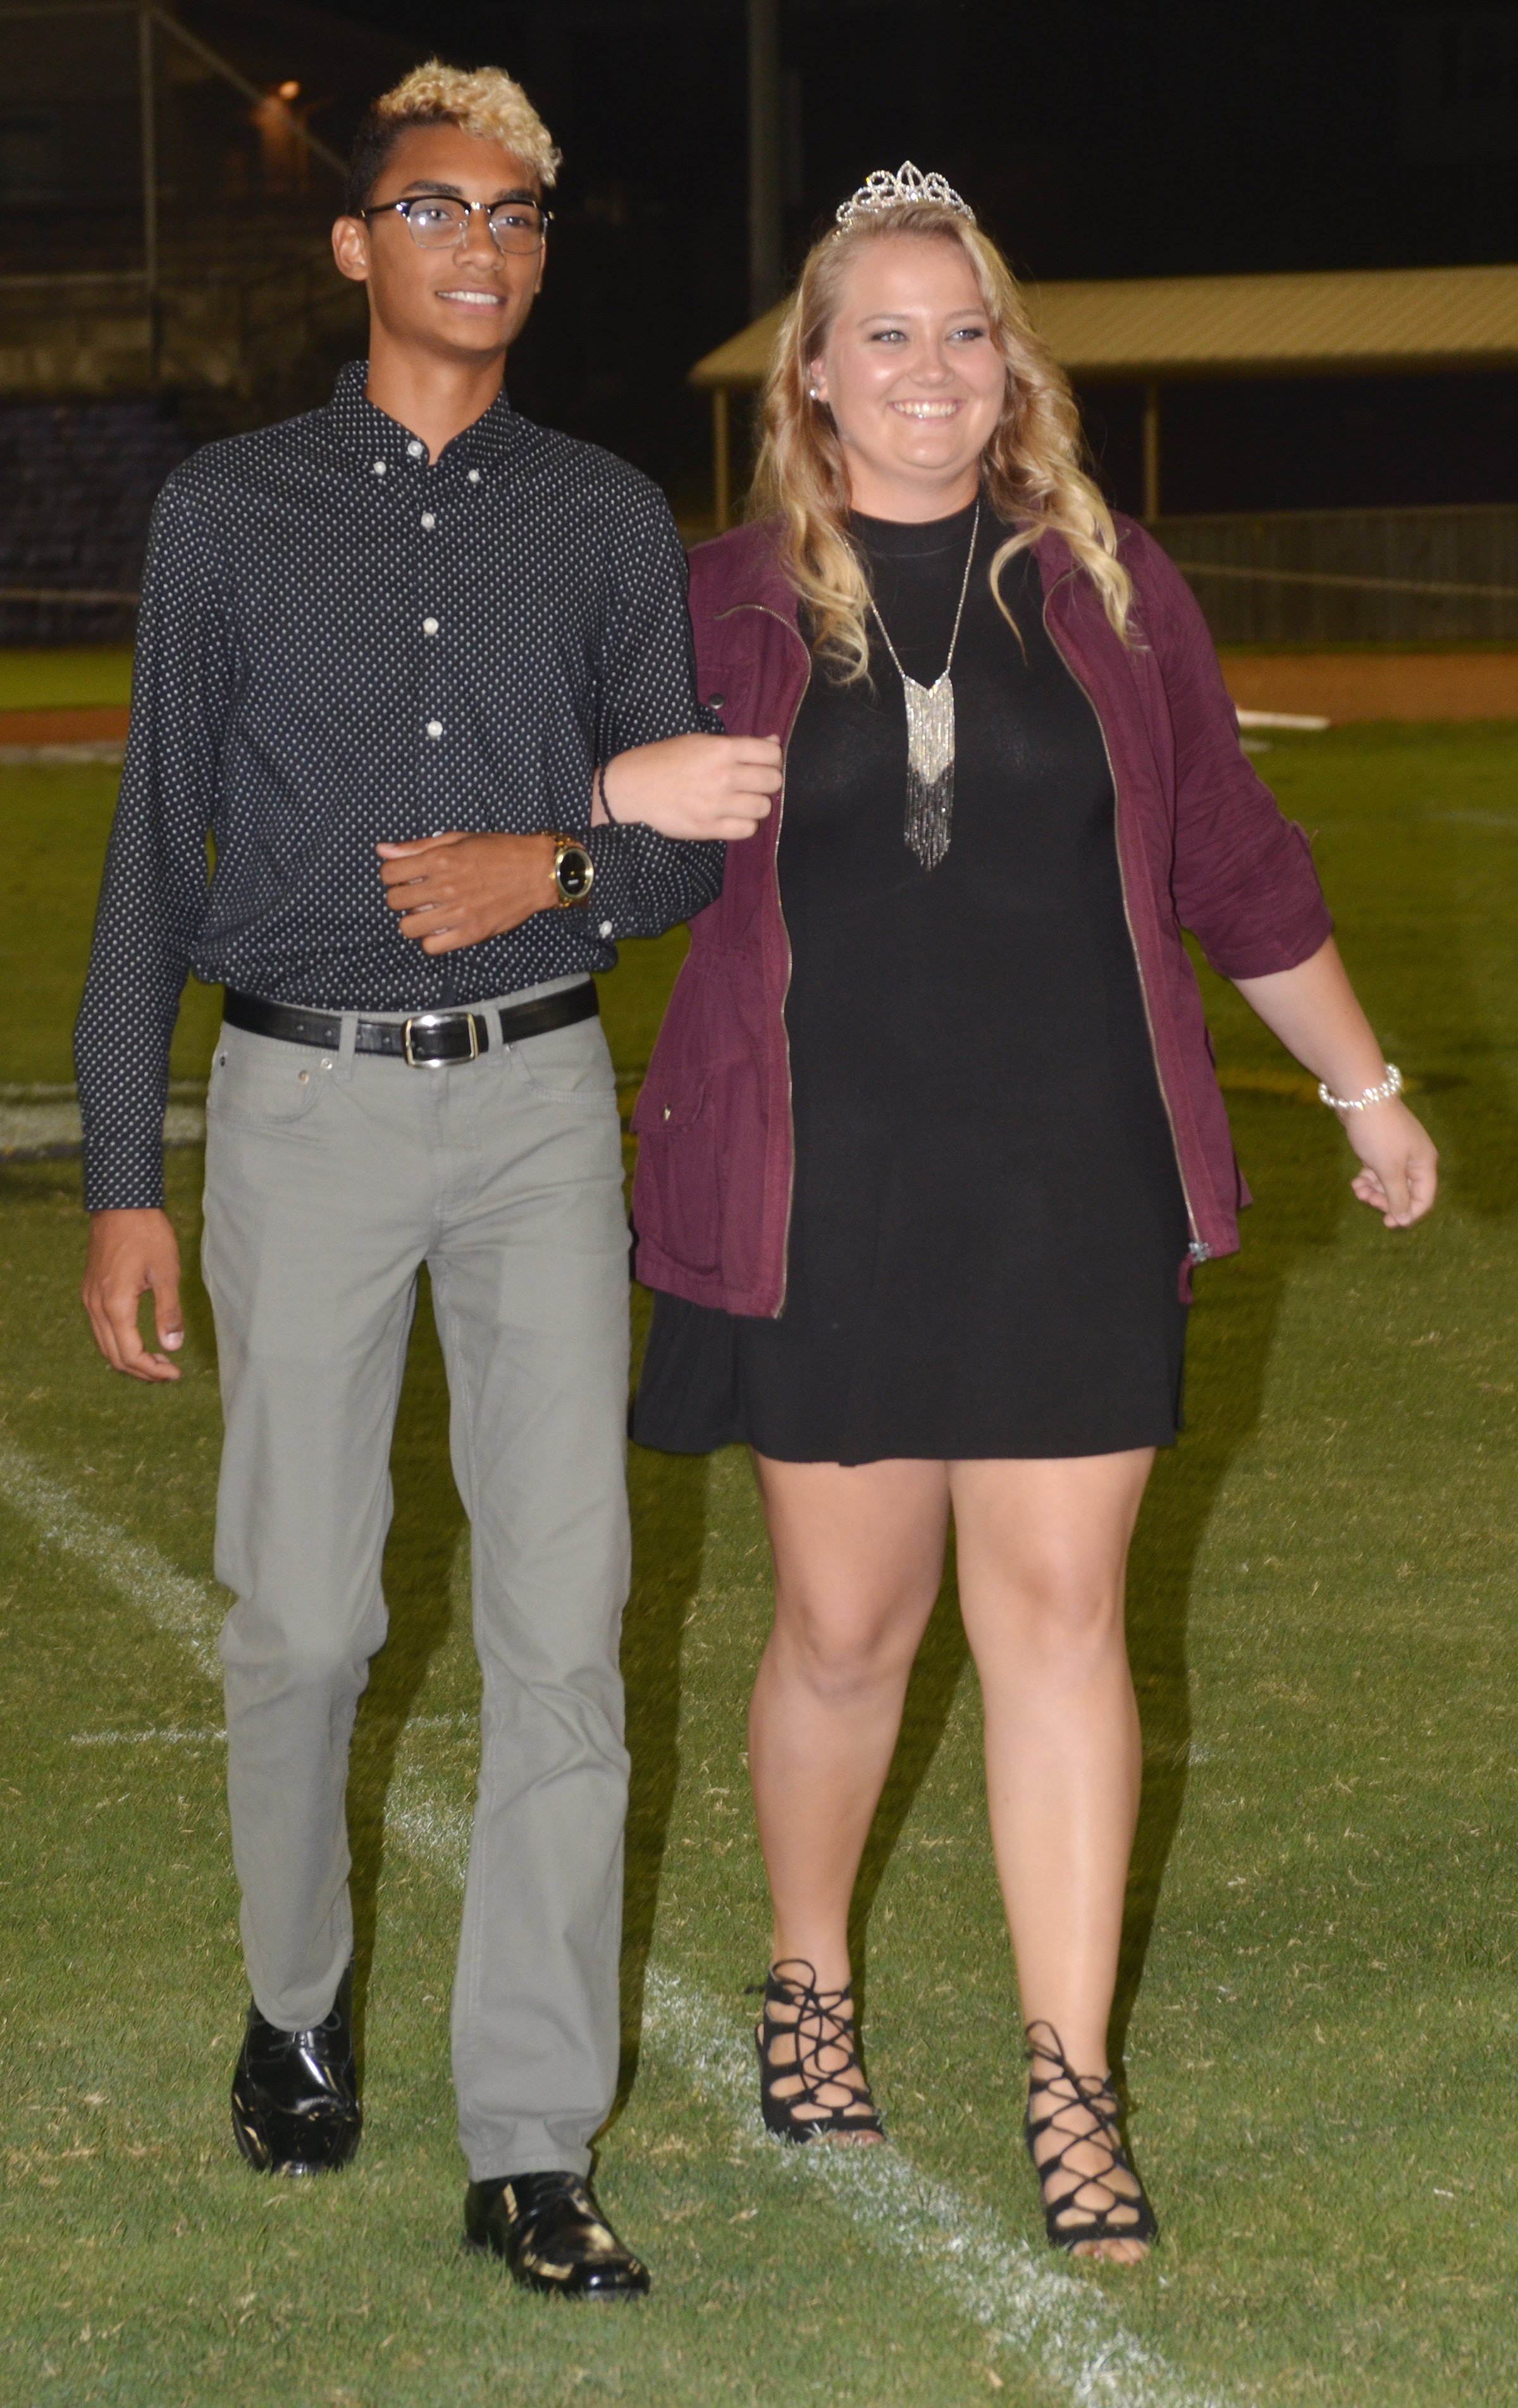 Daniel Silva and Brenna Wethington, who graduated from CHS in May, were last year's football homecoming king and queen.